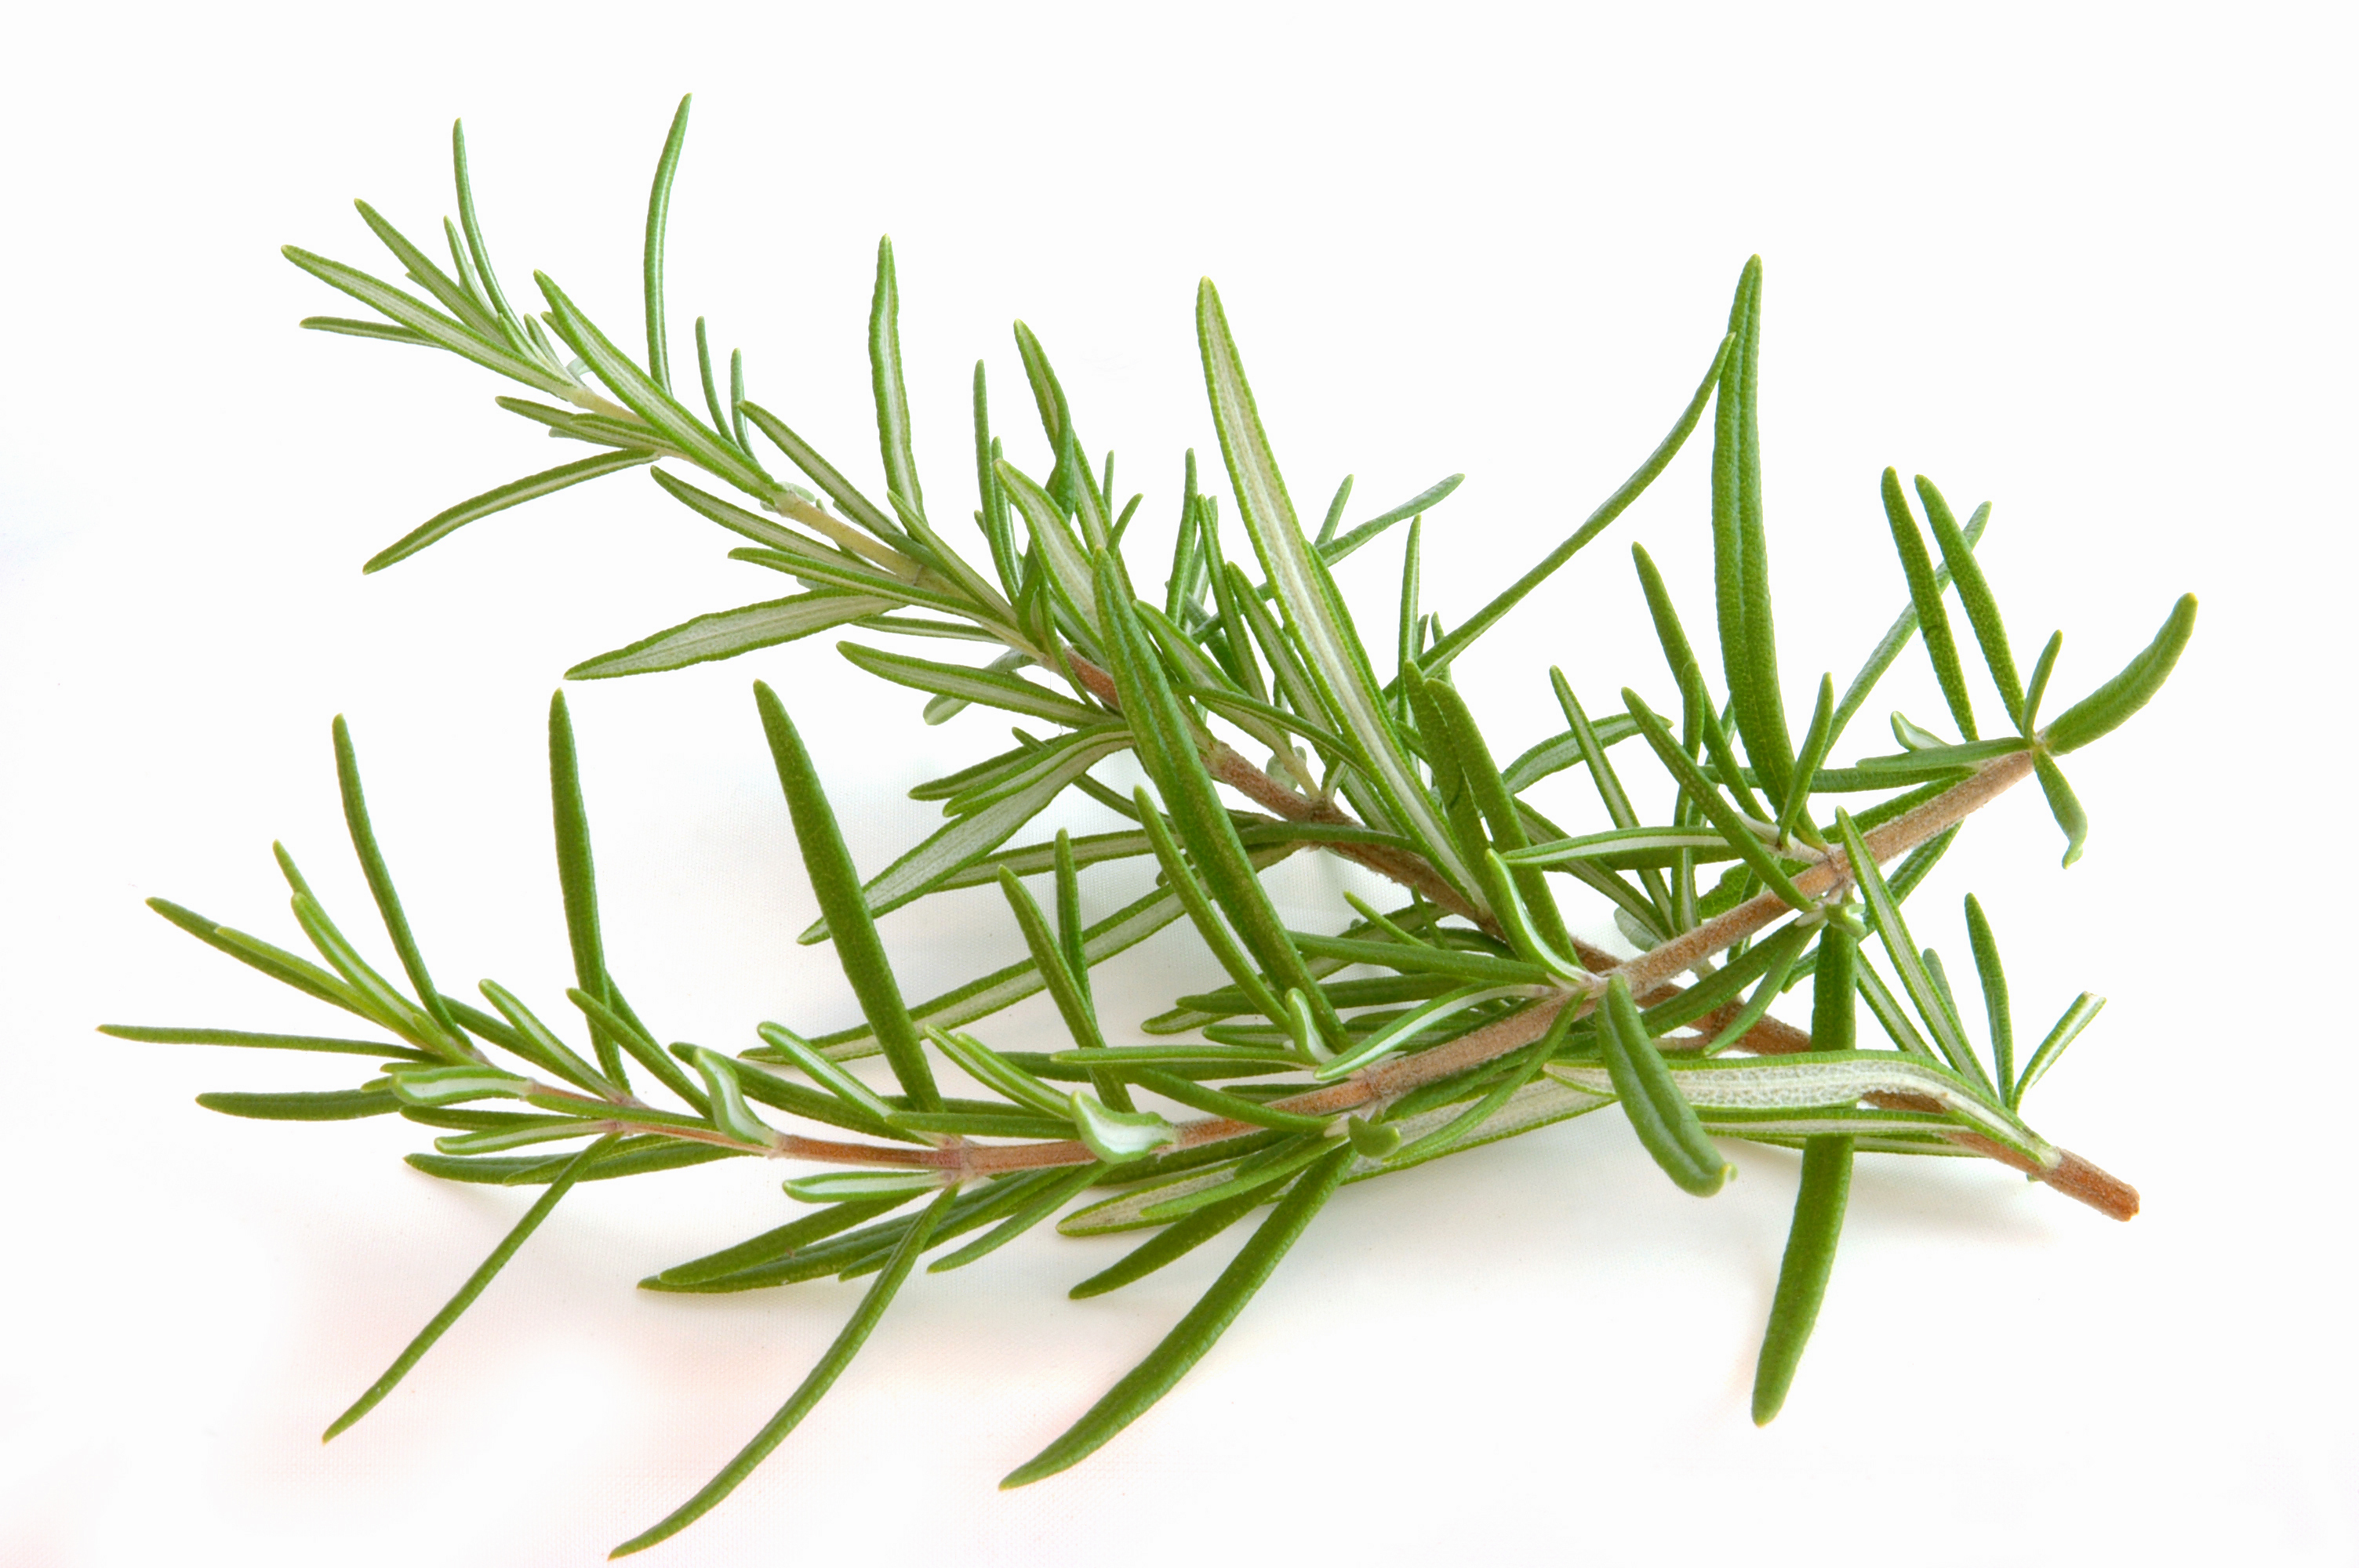 Freezing an easy way to preserve summer herb bounty » Currents » The Free Press, Mankato, MN